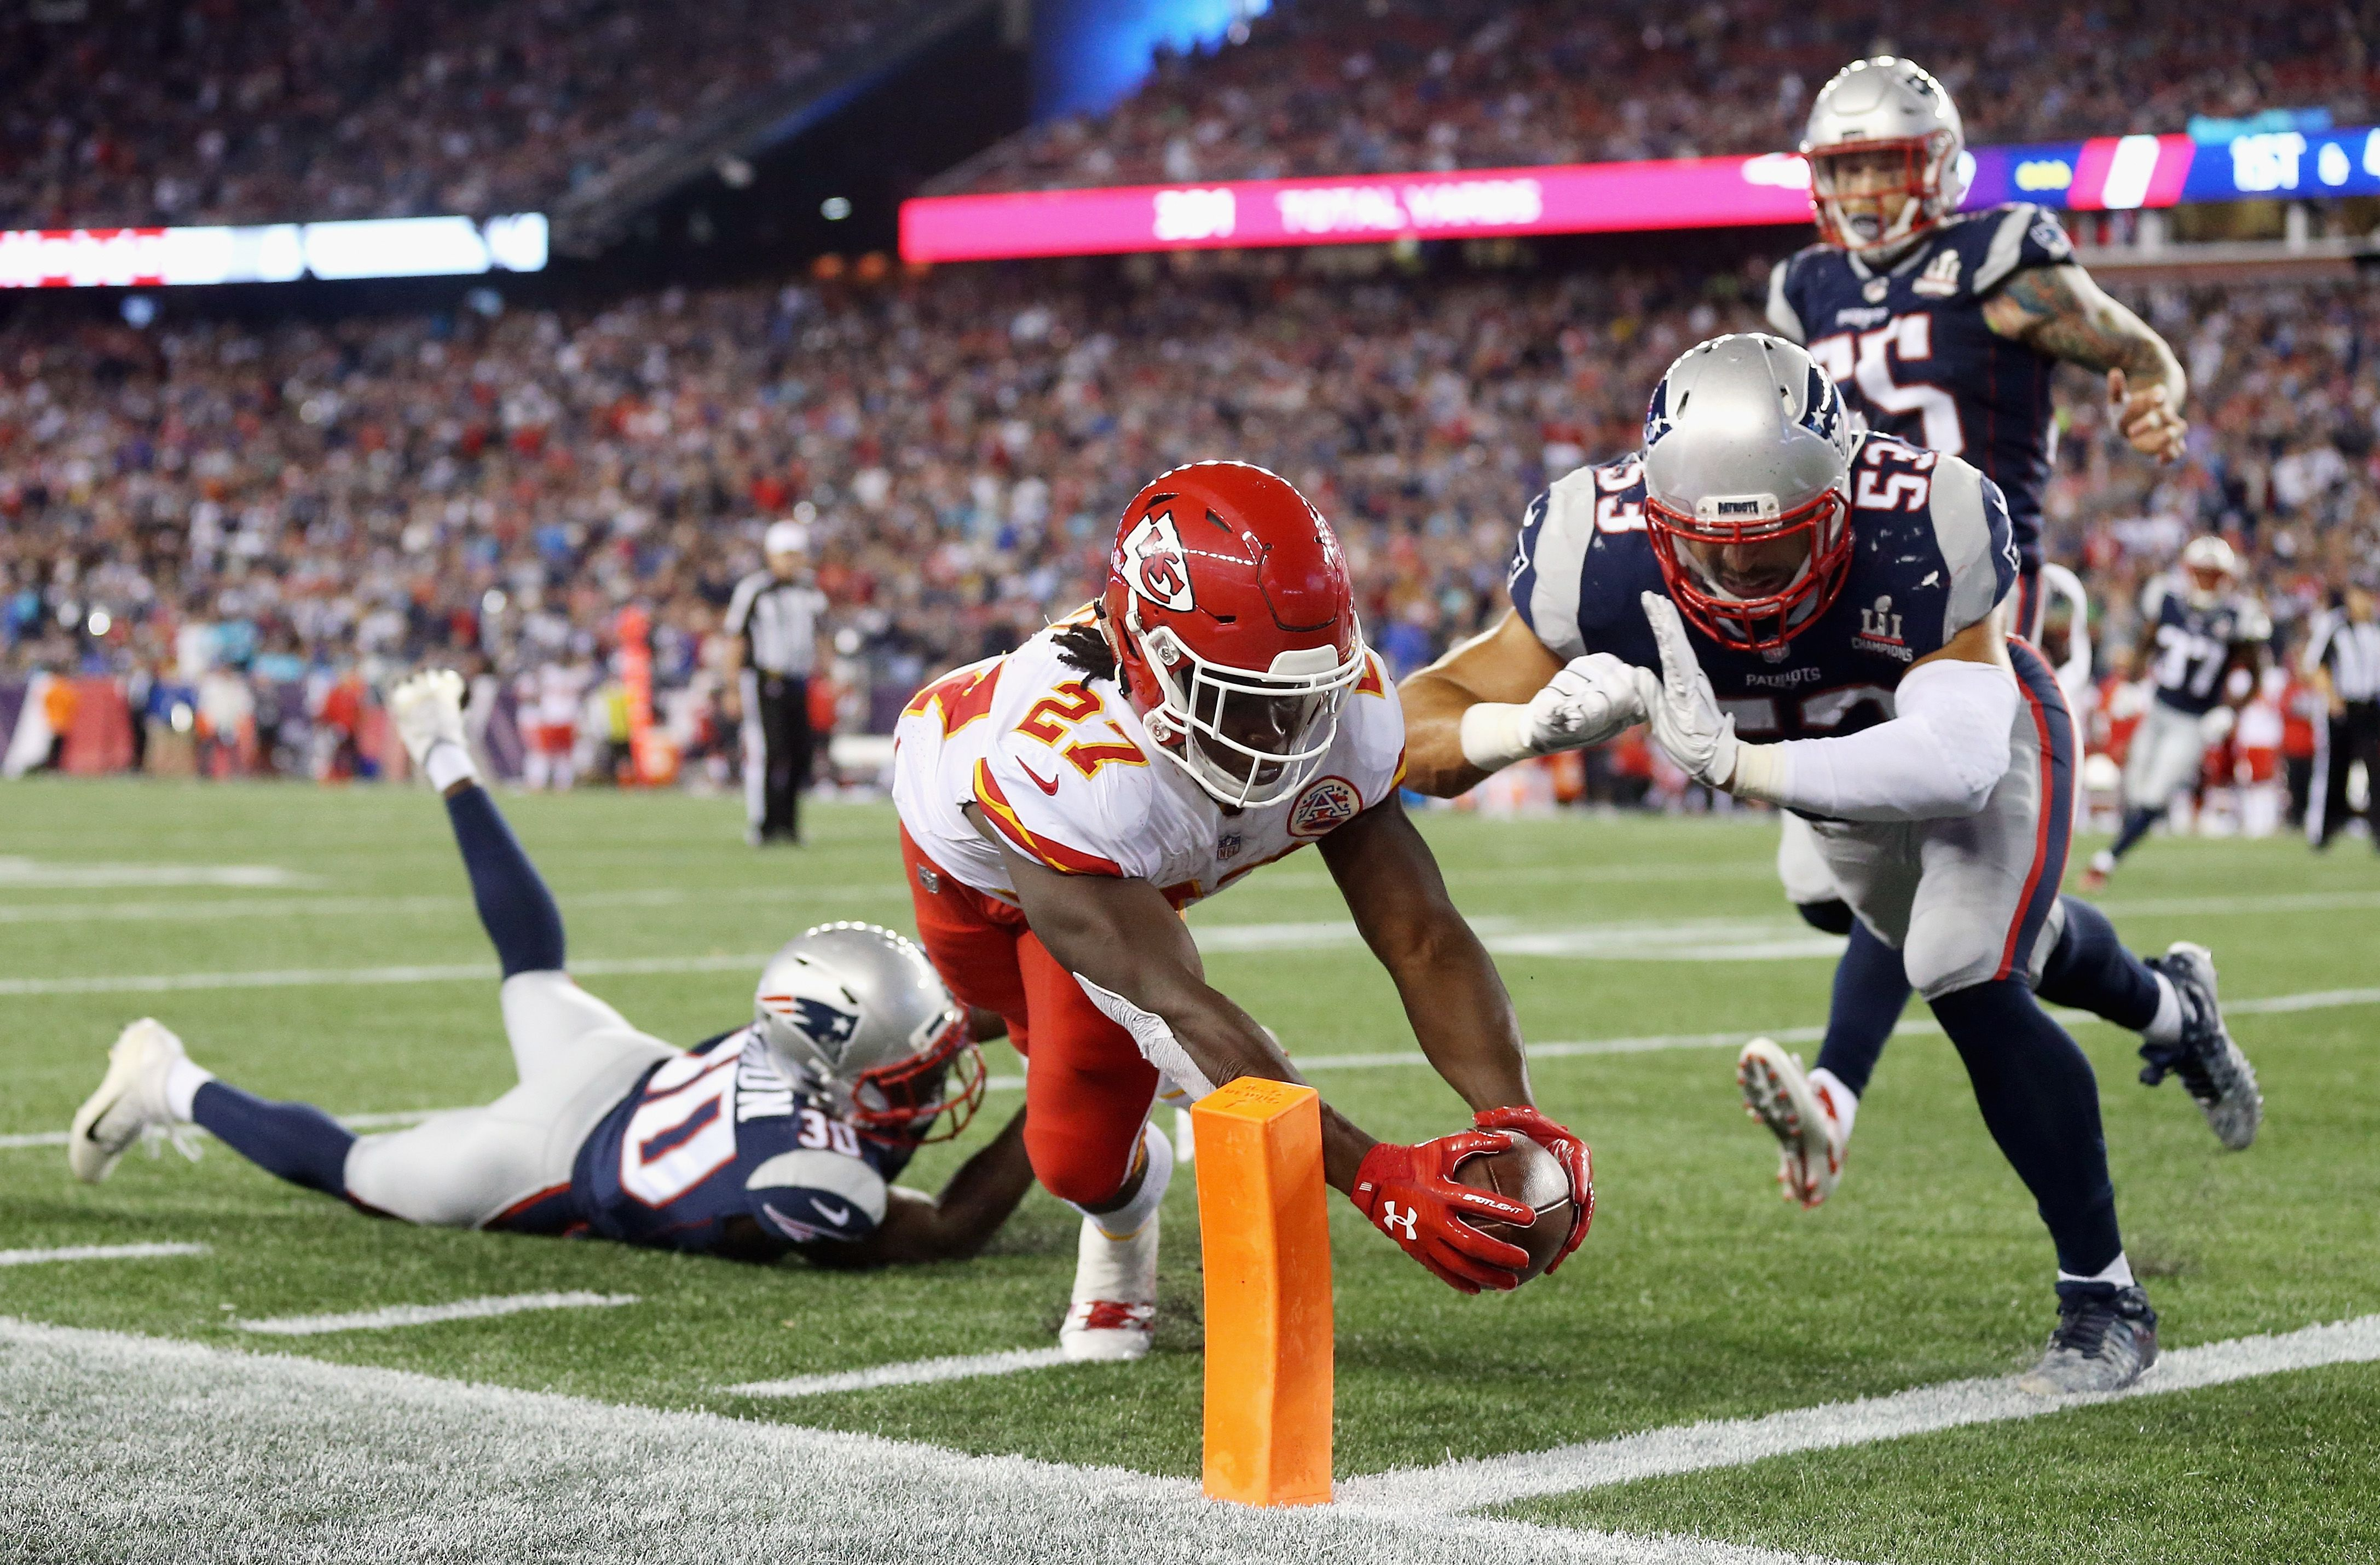 Kareem Hunt #27 of the Kansas City Chiefs dives for the pylon to score a 4-yard rushing touchdown during the fourth quarter against the New England Patriots at Gillette Stadium on September 7, 2017 in Foxboro, Massachusetts. (Photo by Maddie Meyer/Getty Images)